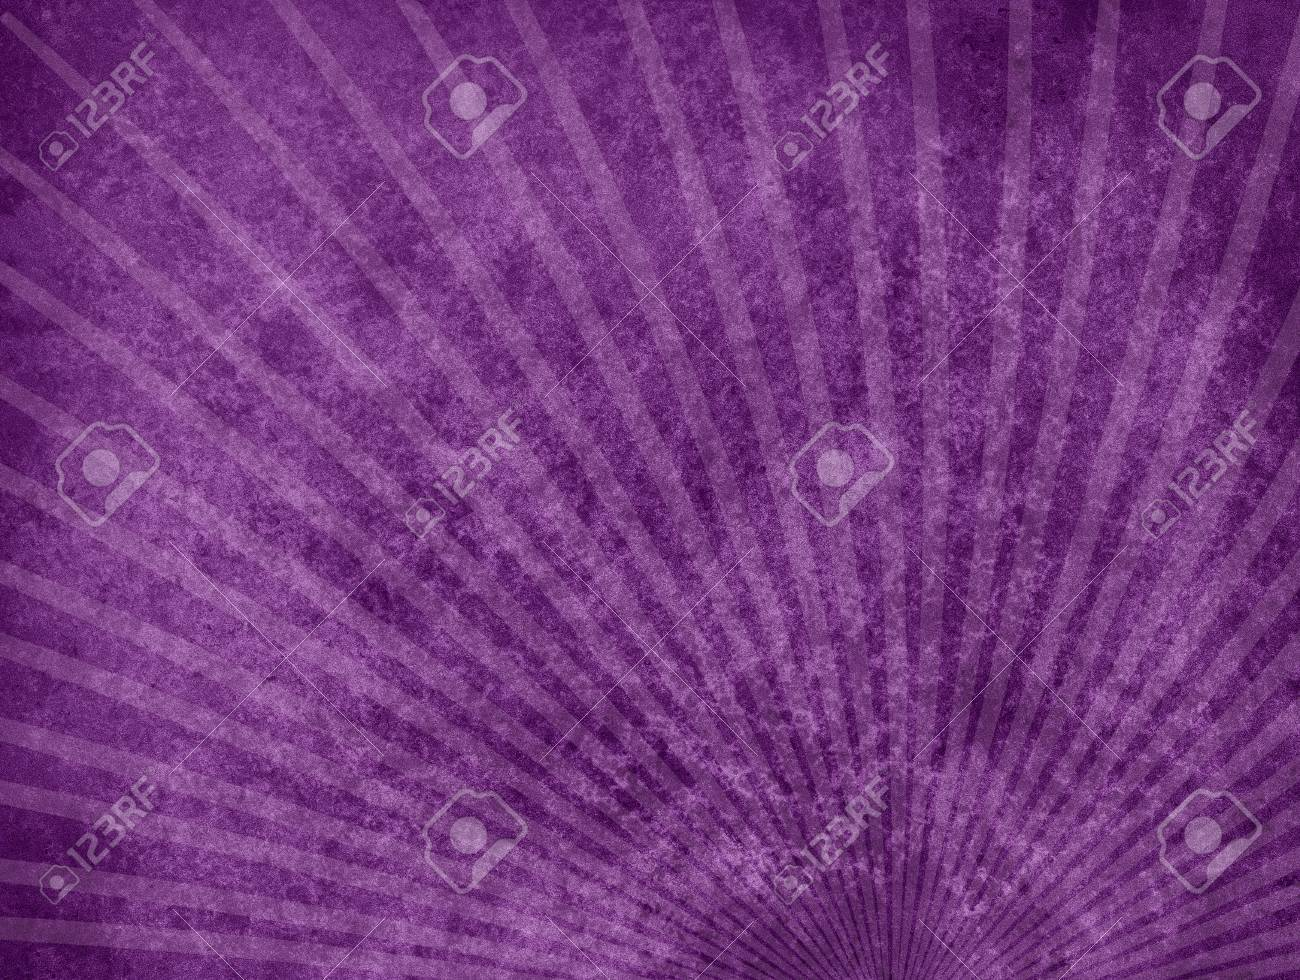 abstract purple background with rough distressed aged texture